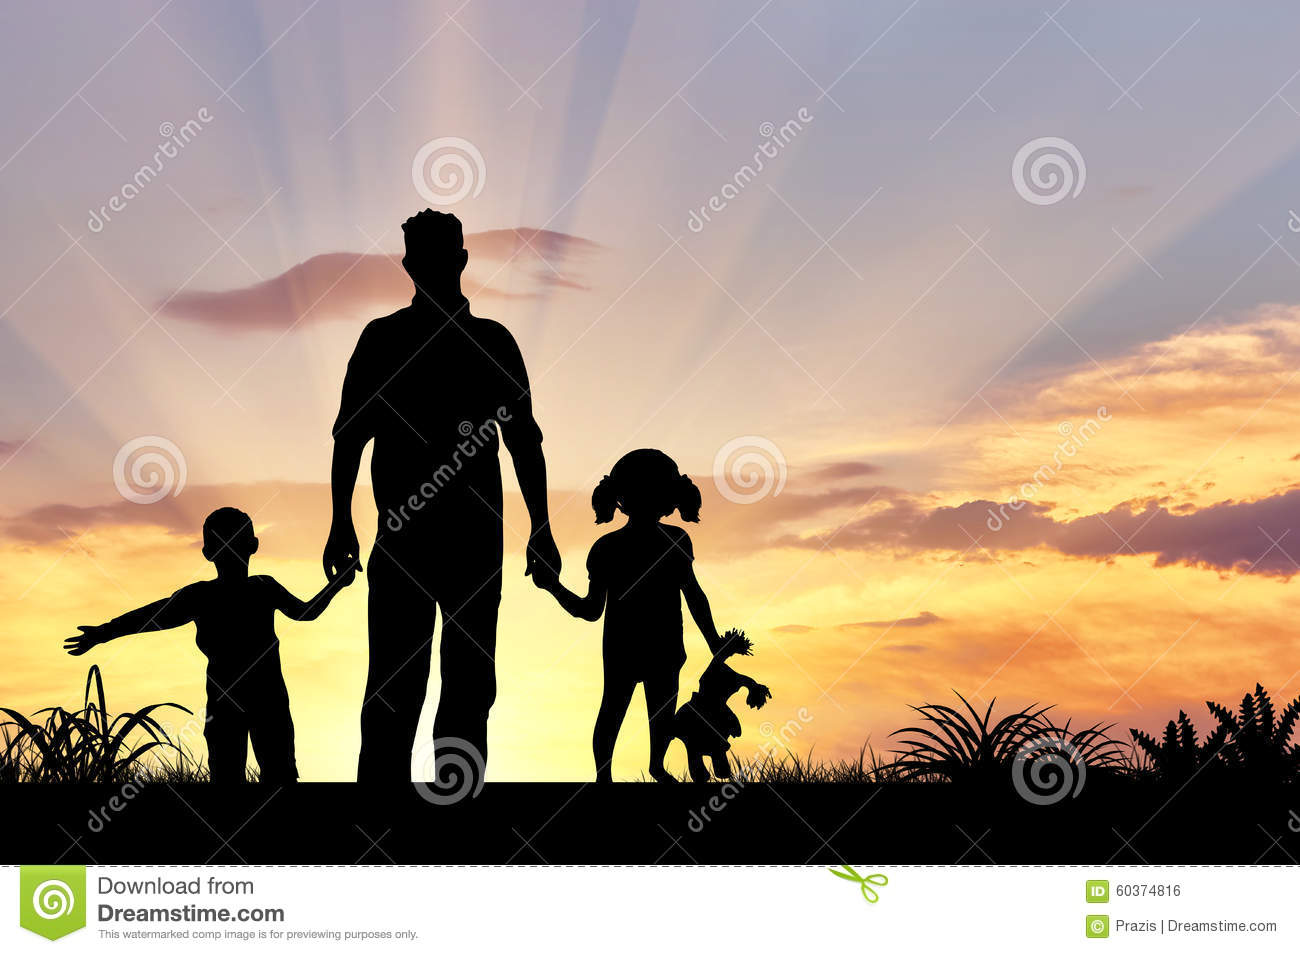 Silhouette Of A Happy Family Stock Photo - Image: 60374816